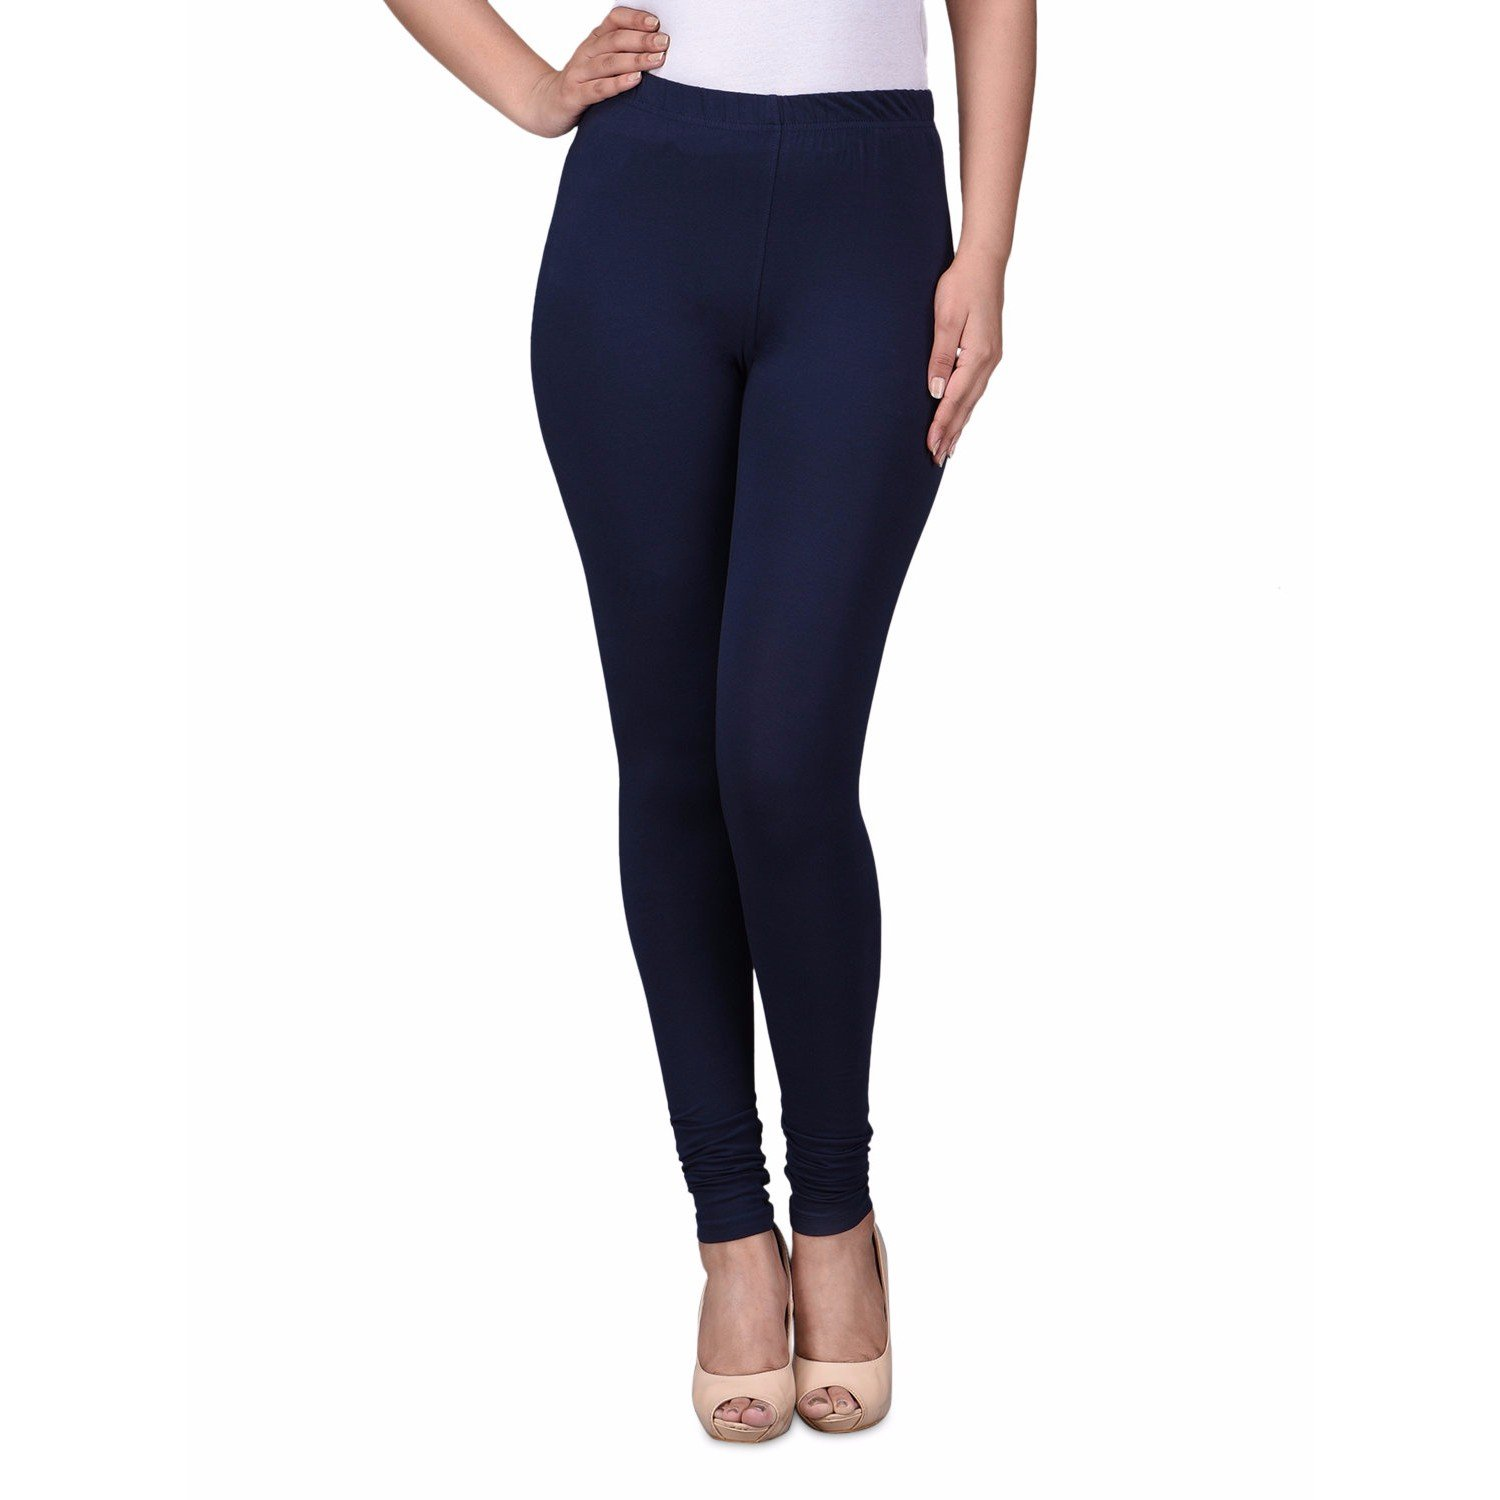 AAICO Best Quality Leggings at Lowest Price